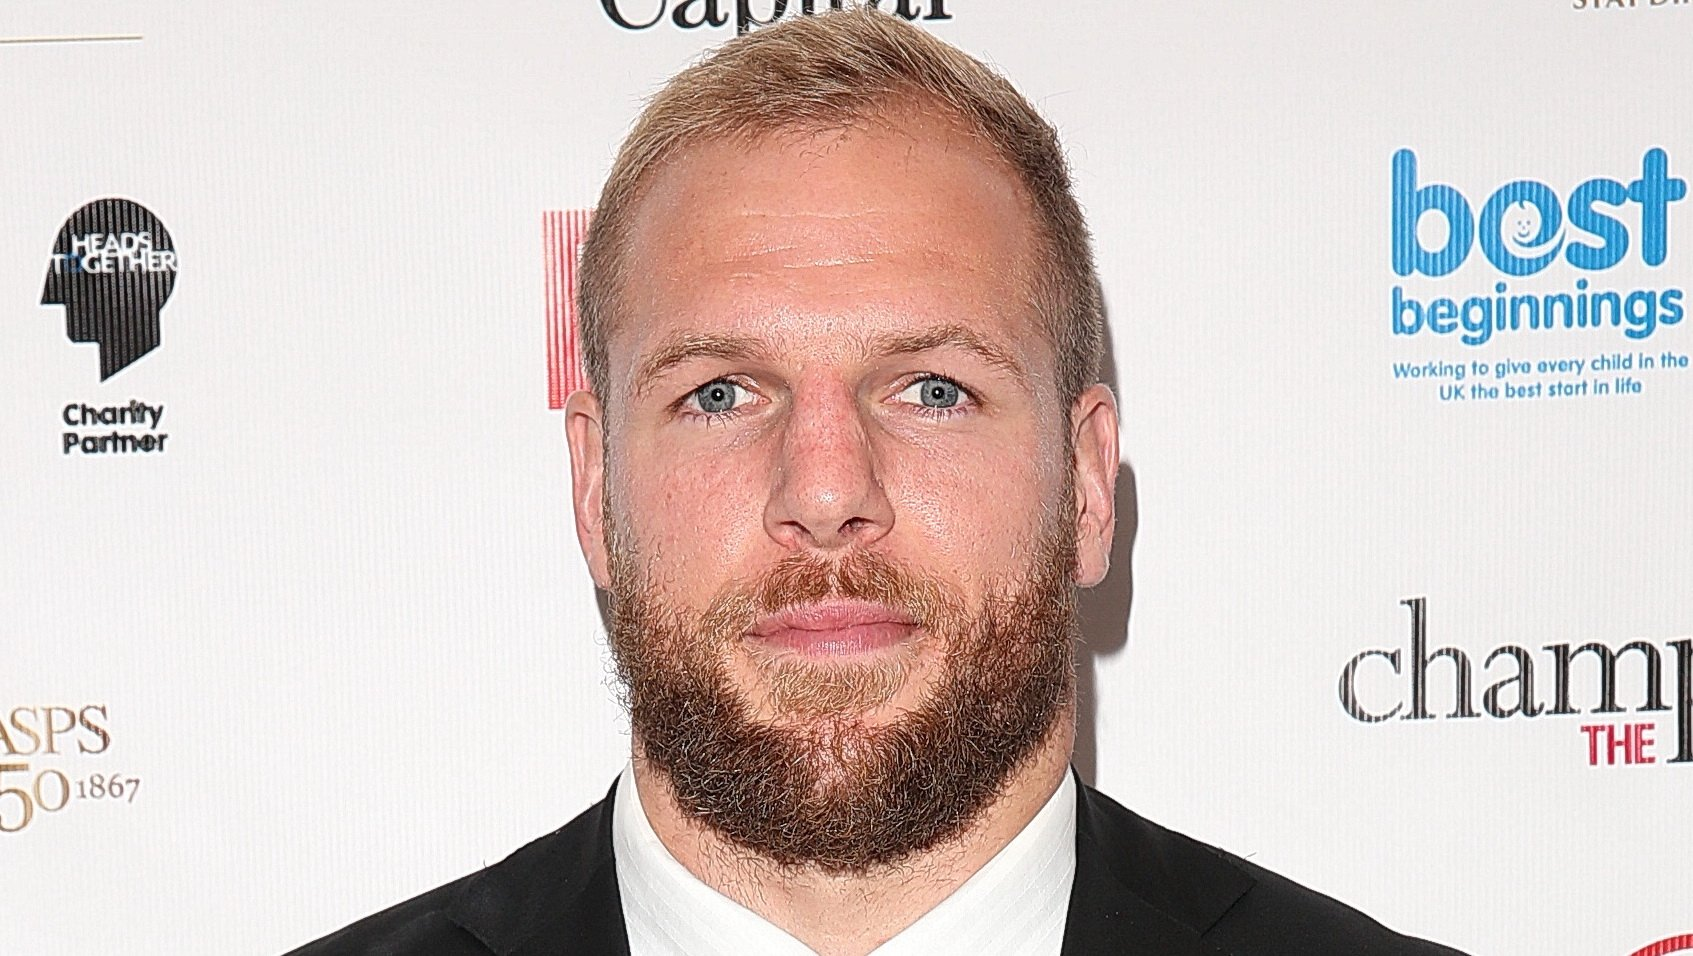 I'm A Celebrity's James Haskell says he won't miss sex with Chloe Madeley while he's in the jungle